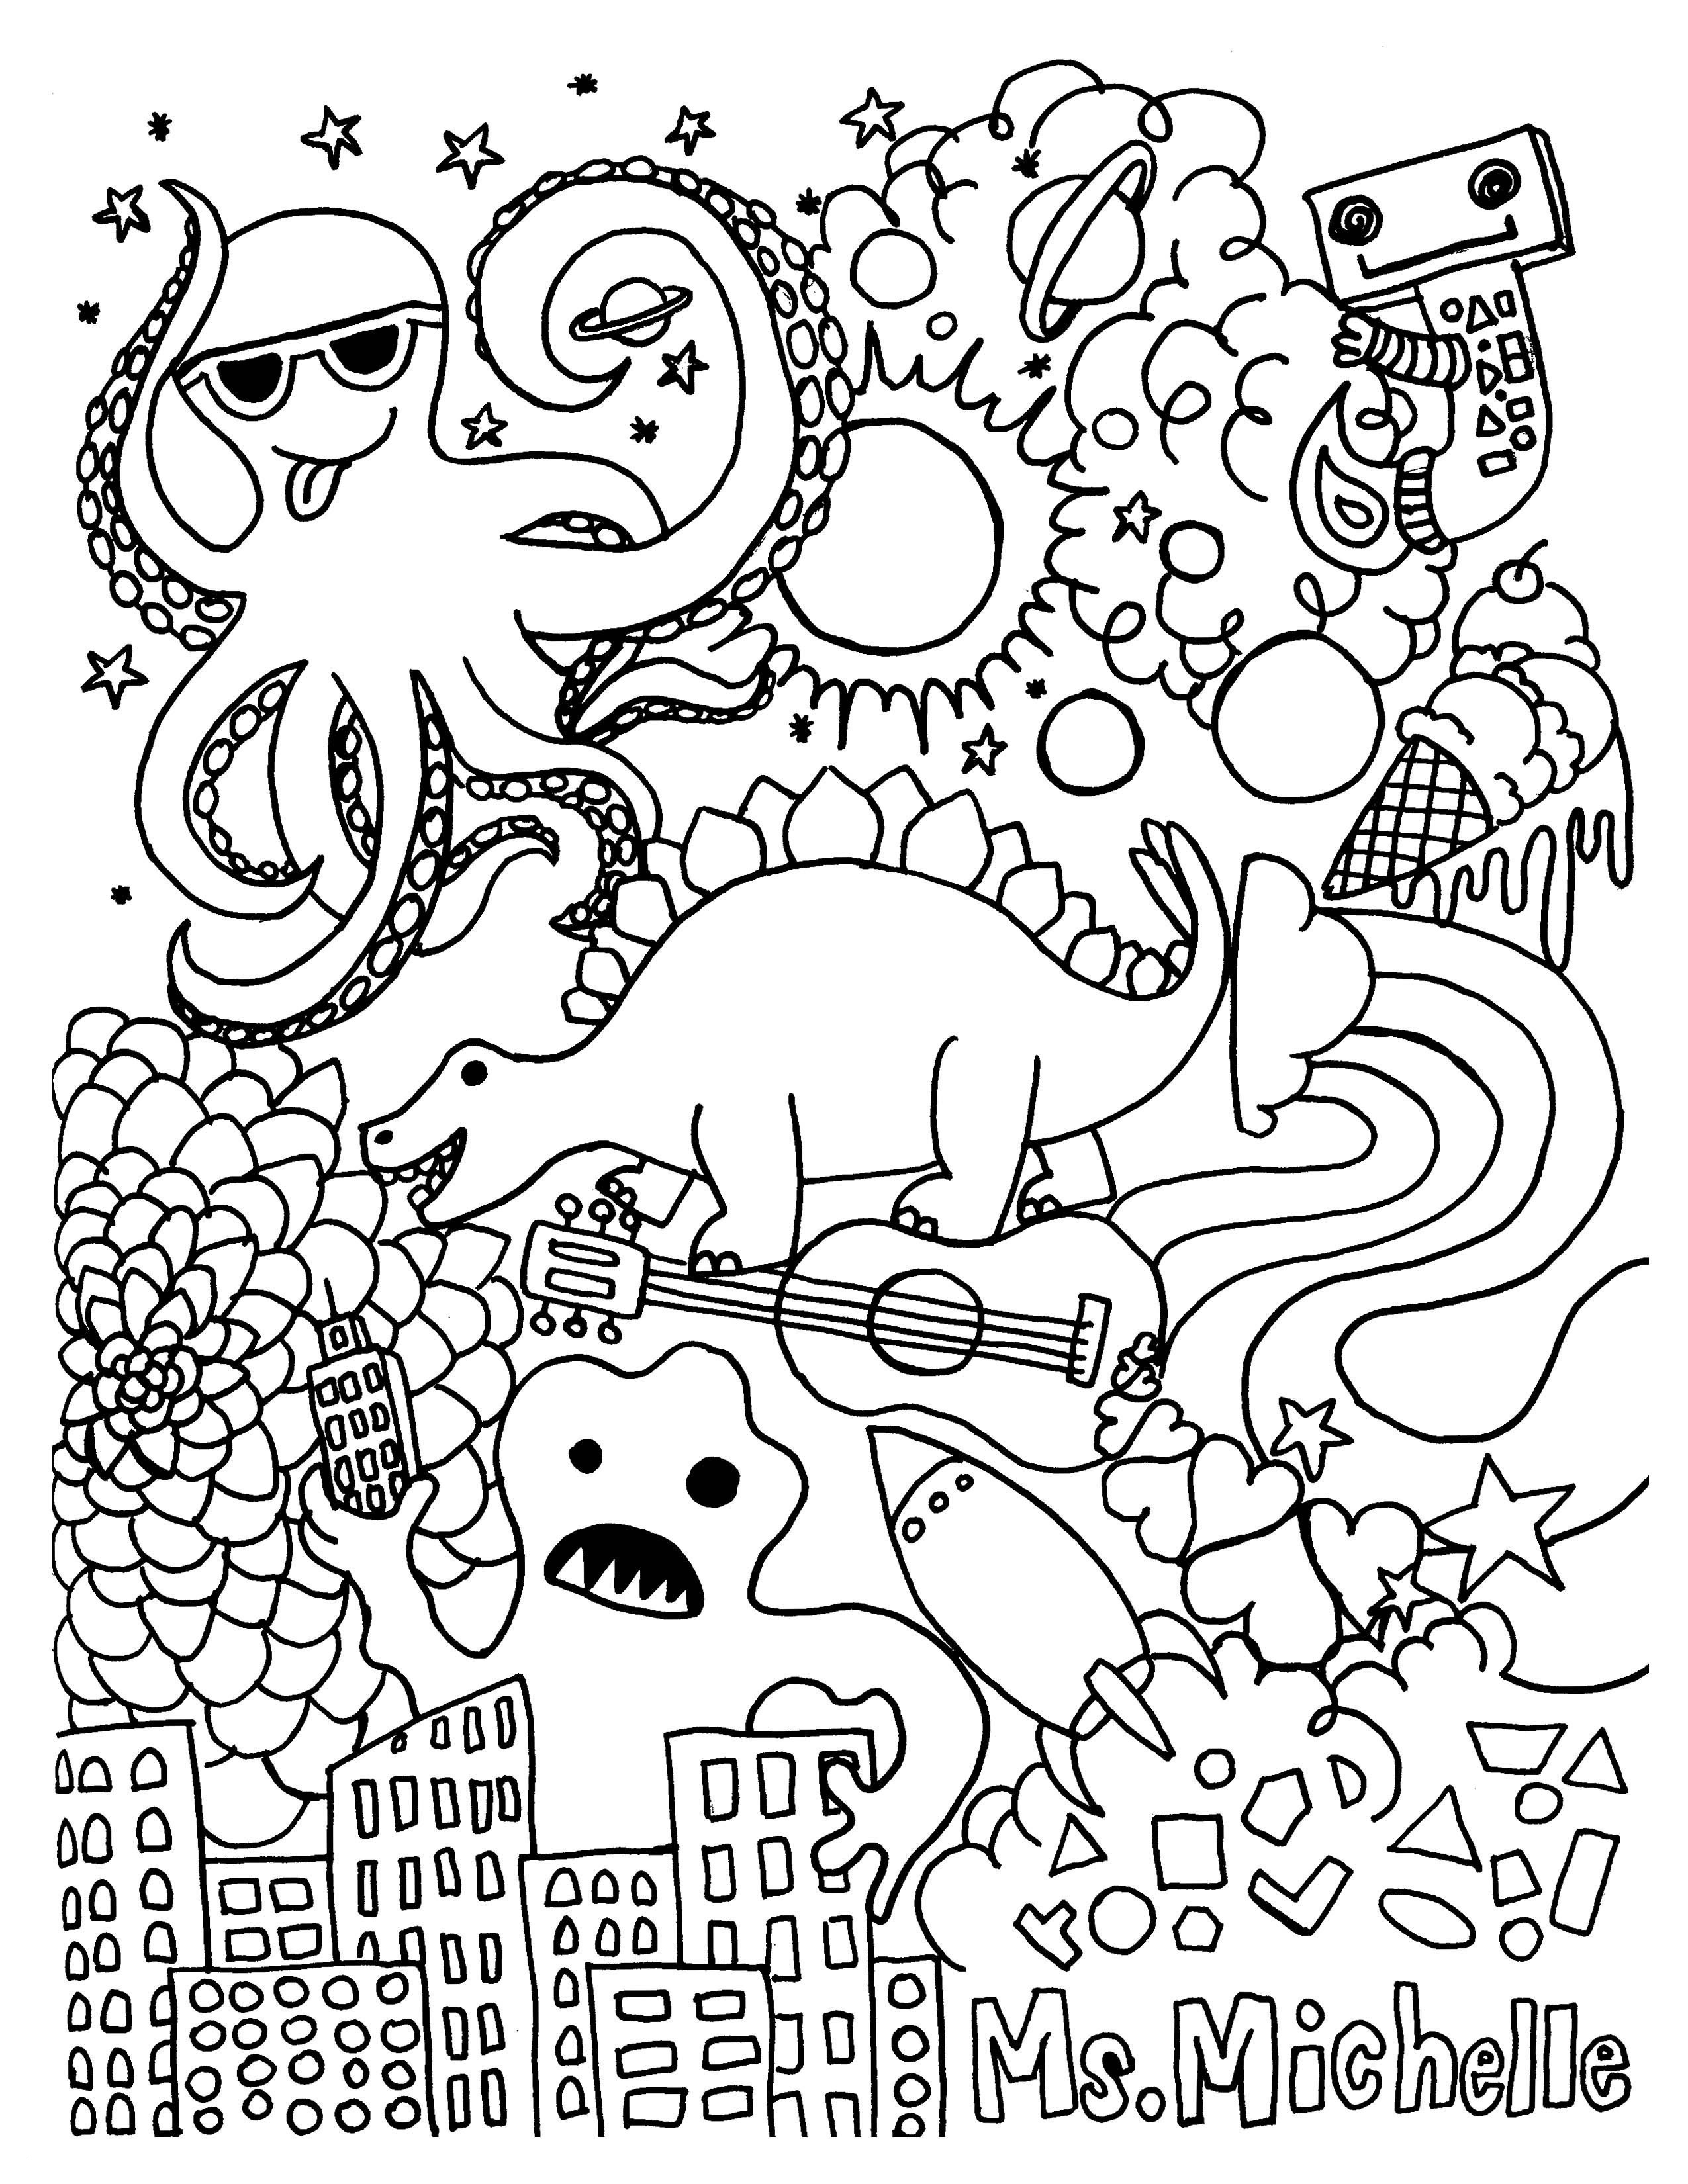 23 Mothers Day Free Coloring Pages Download - Coloring Sheets